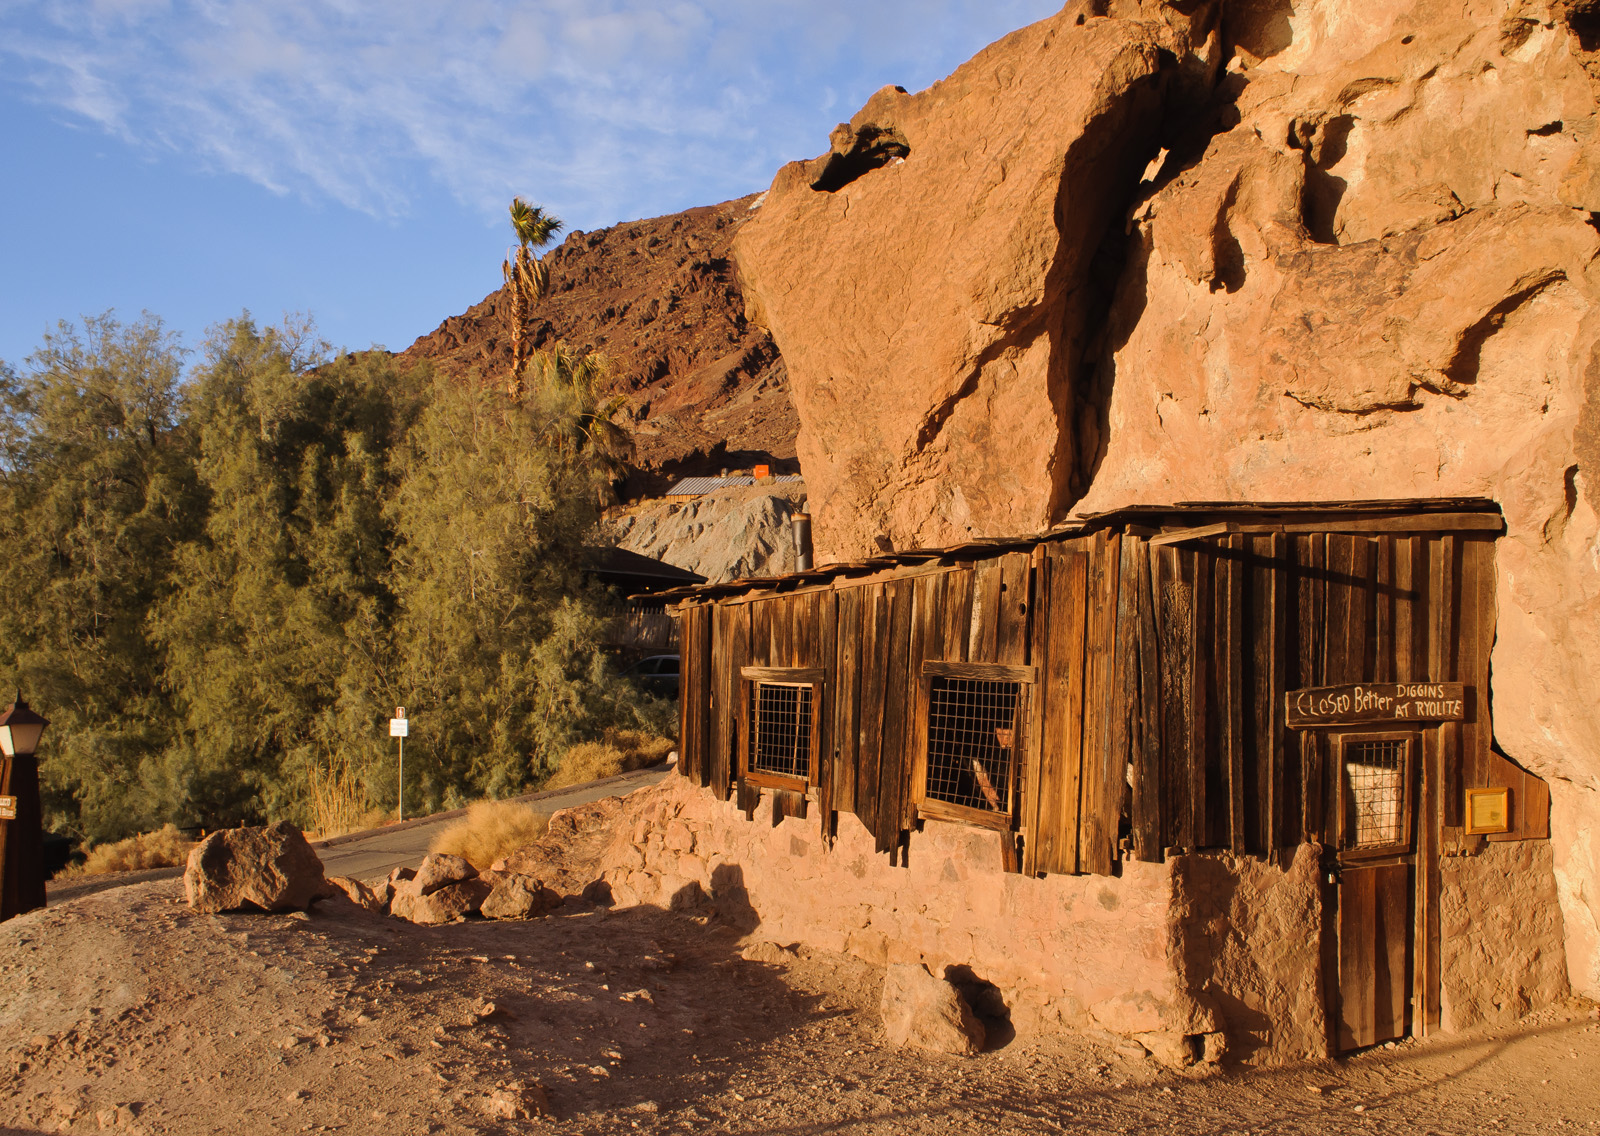 File:Calico Ghost Town (8346928529).jpg - Wikipedia